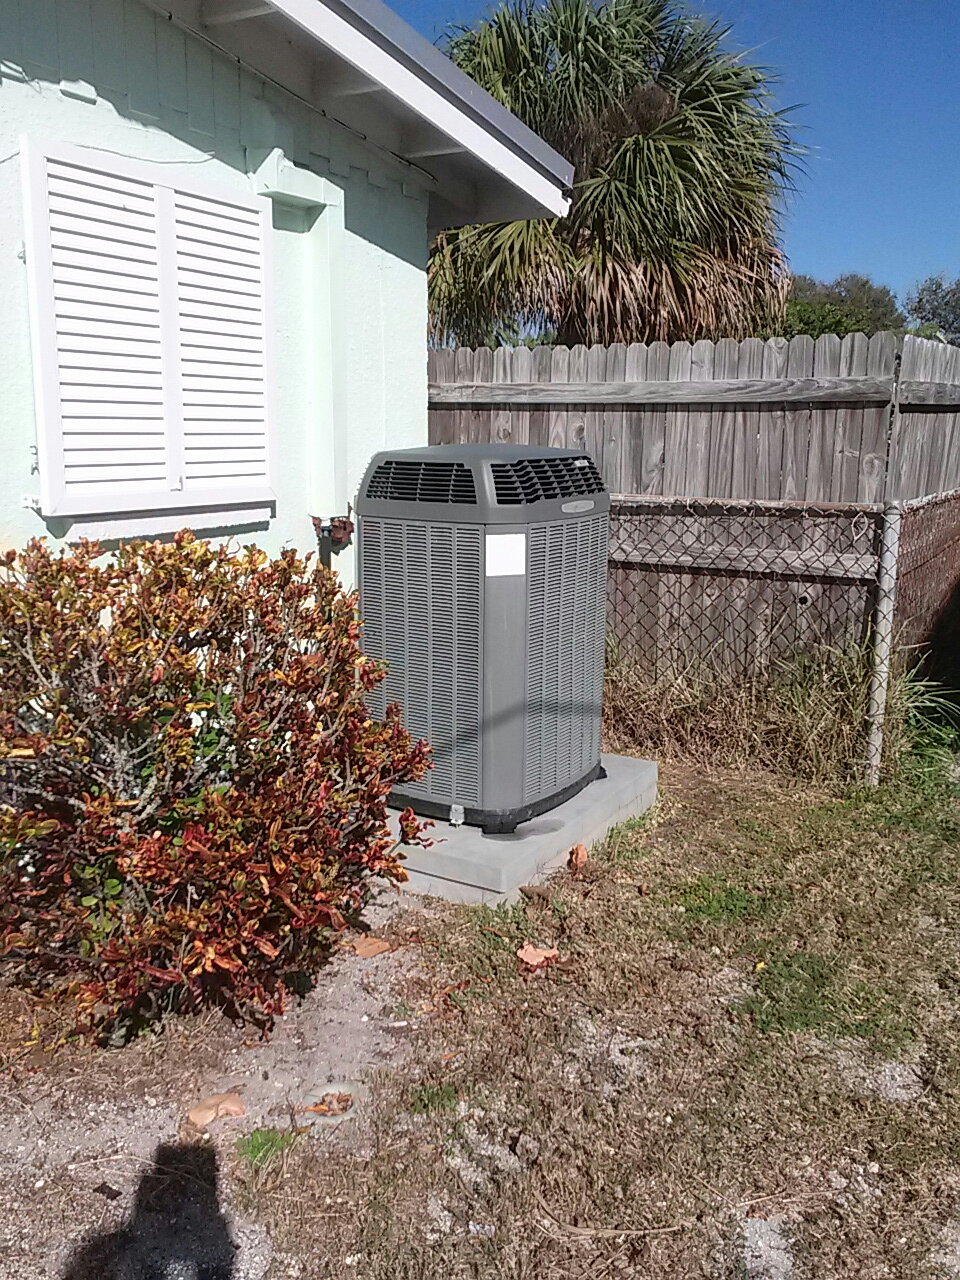 Cocoa Beach, FL - Perform preventative maintenance annual tune-up on a Trane air conditioning system.